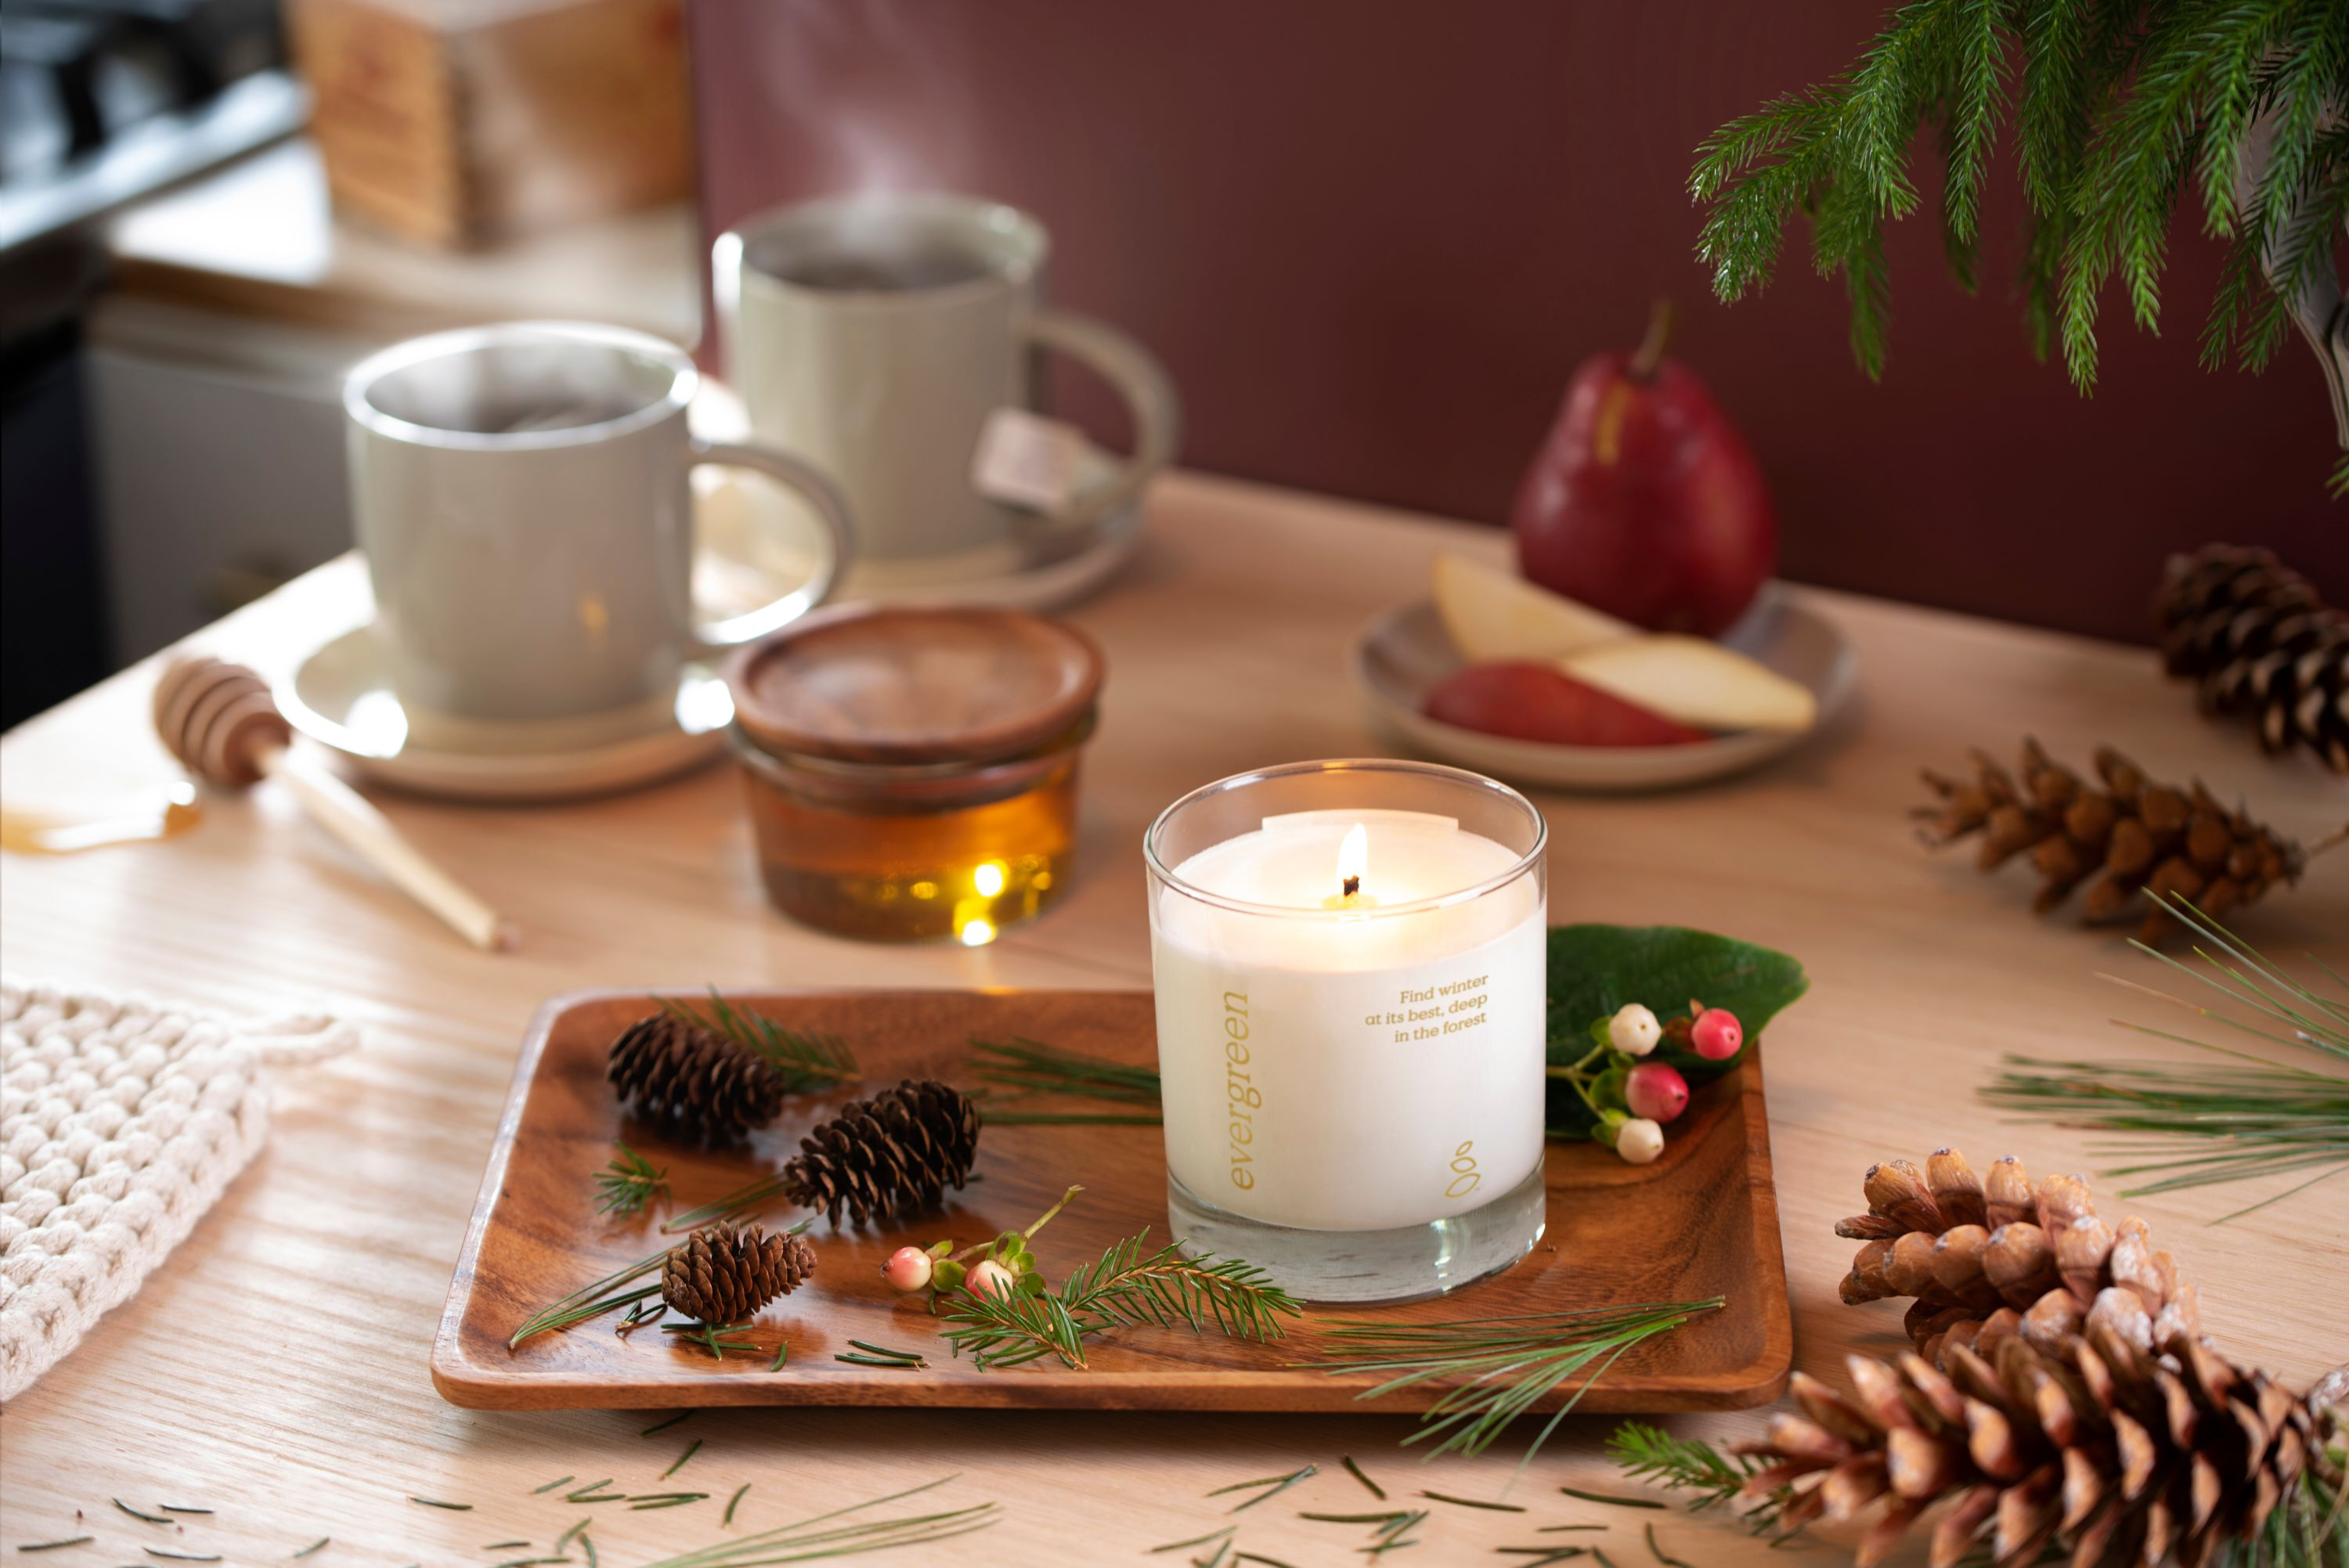 Lit candles and steaming cups of tea on a wooden table that's covered with holiday season decorations.